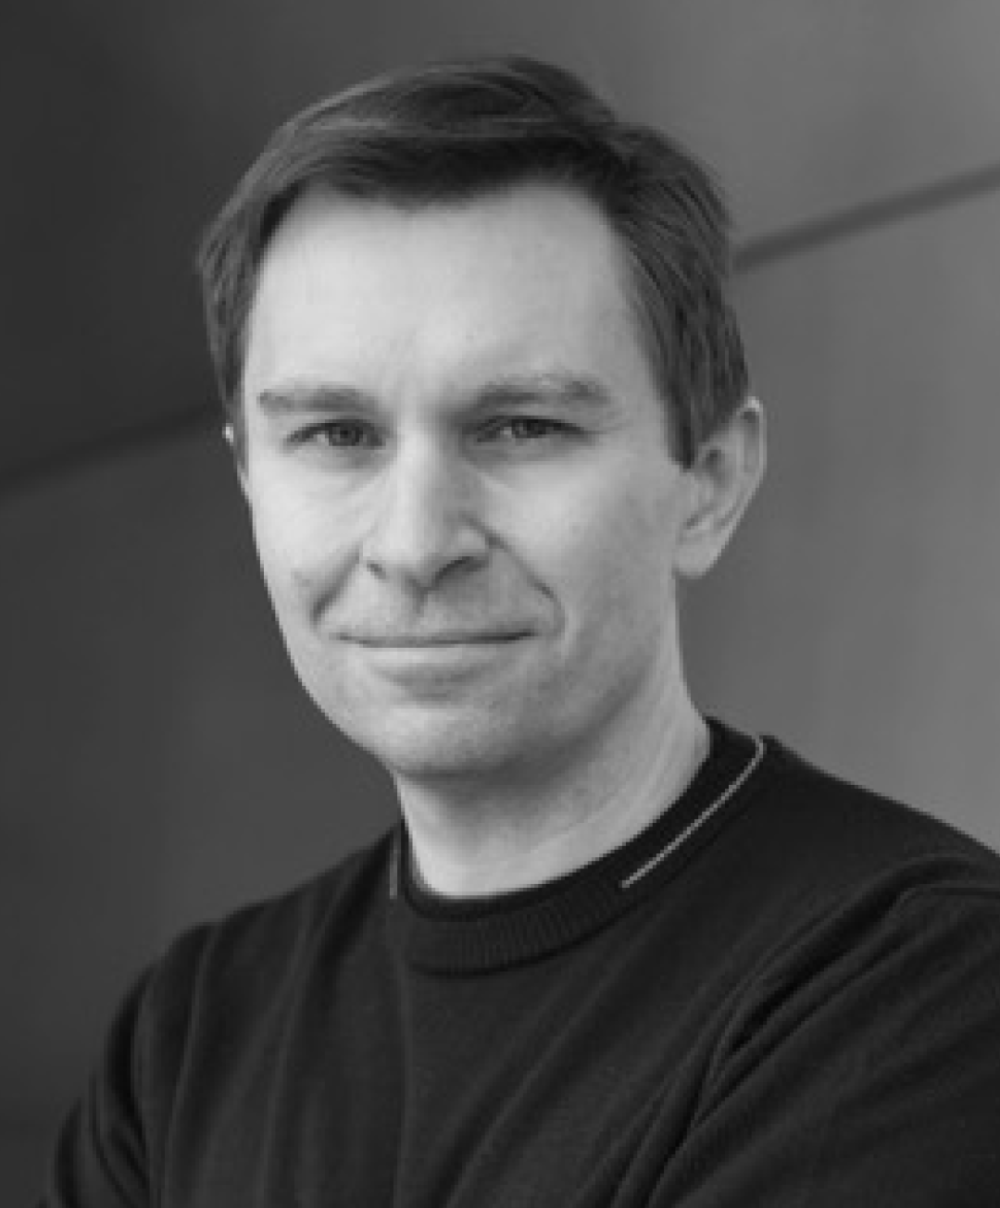 Black and white head shot of biologist and geneticist David Sinclair